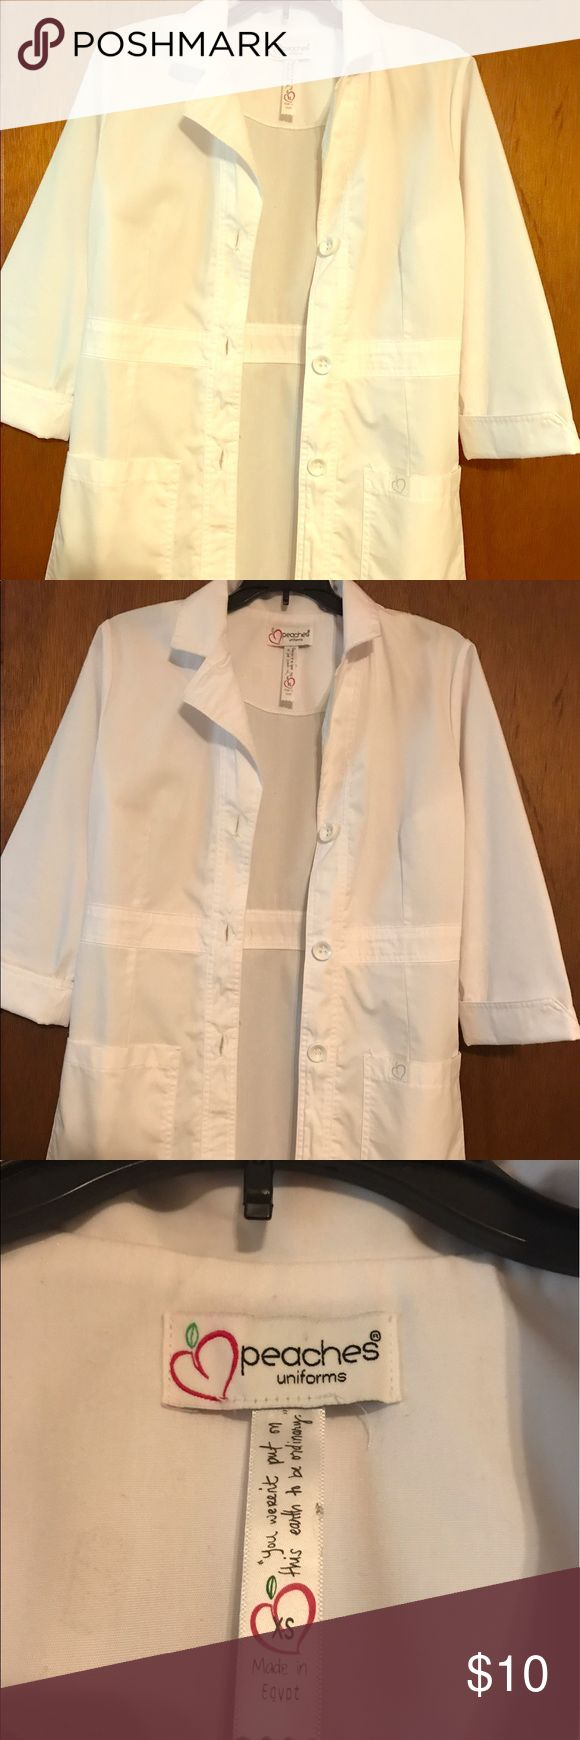 White lab coat Worn once! In perfect condition! Jackets & Coats